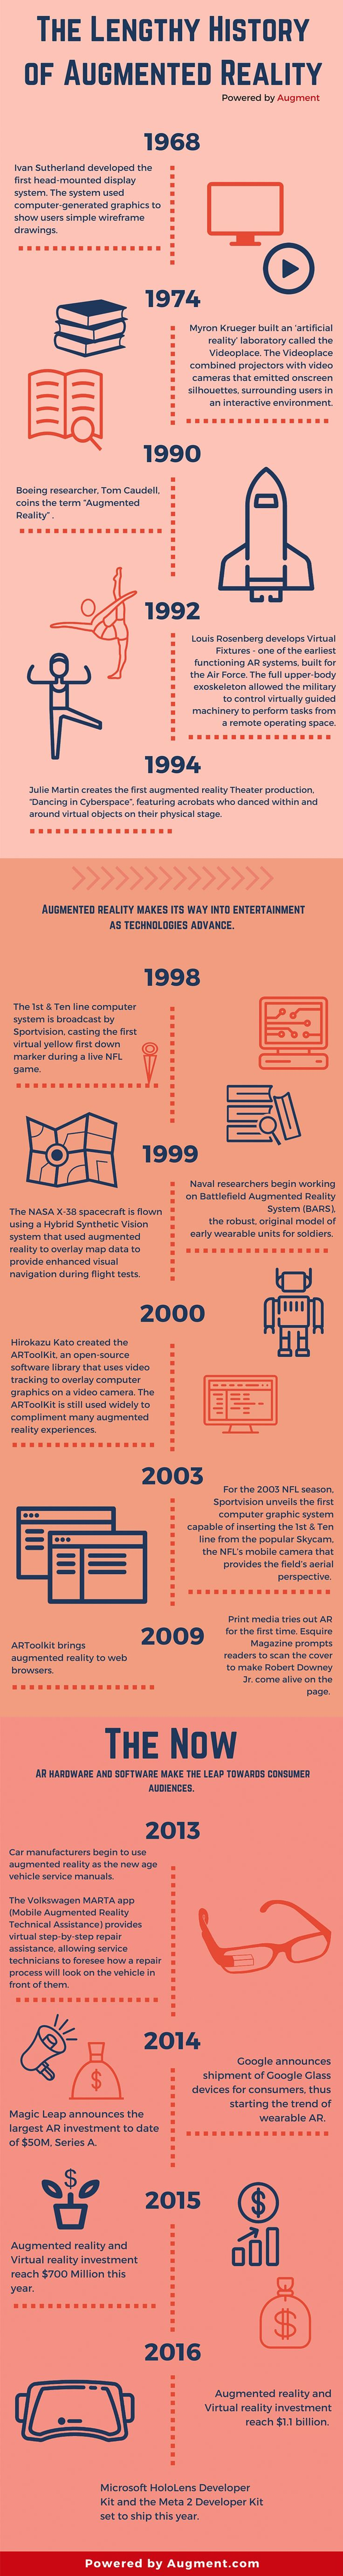 Infographic: The History of Augmented Reality - Augment News